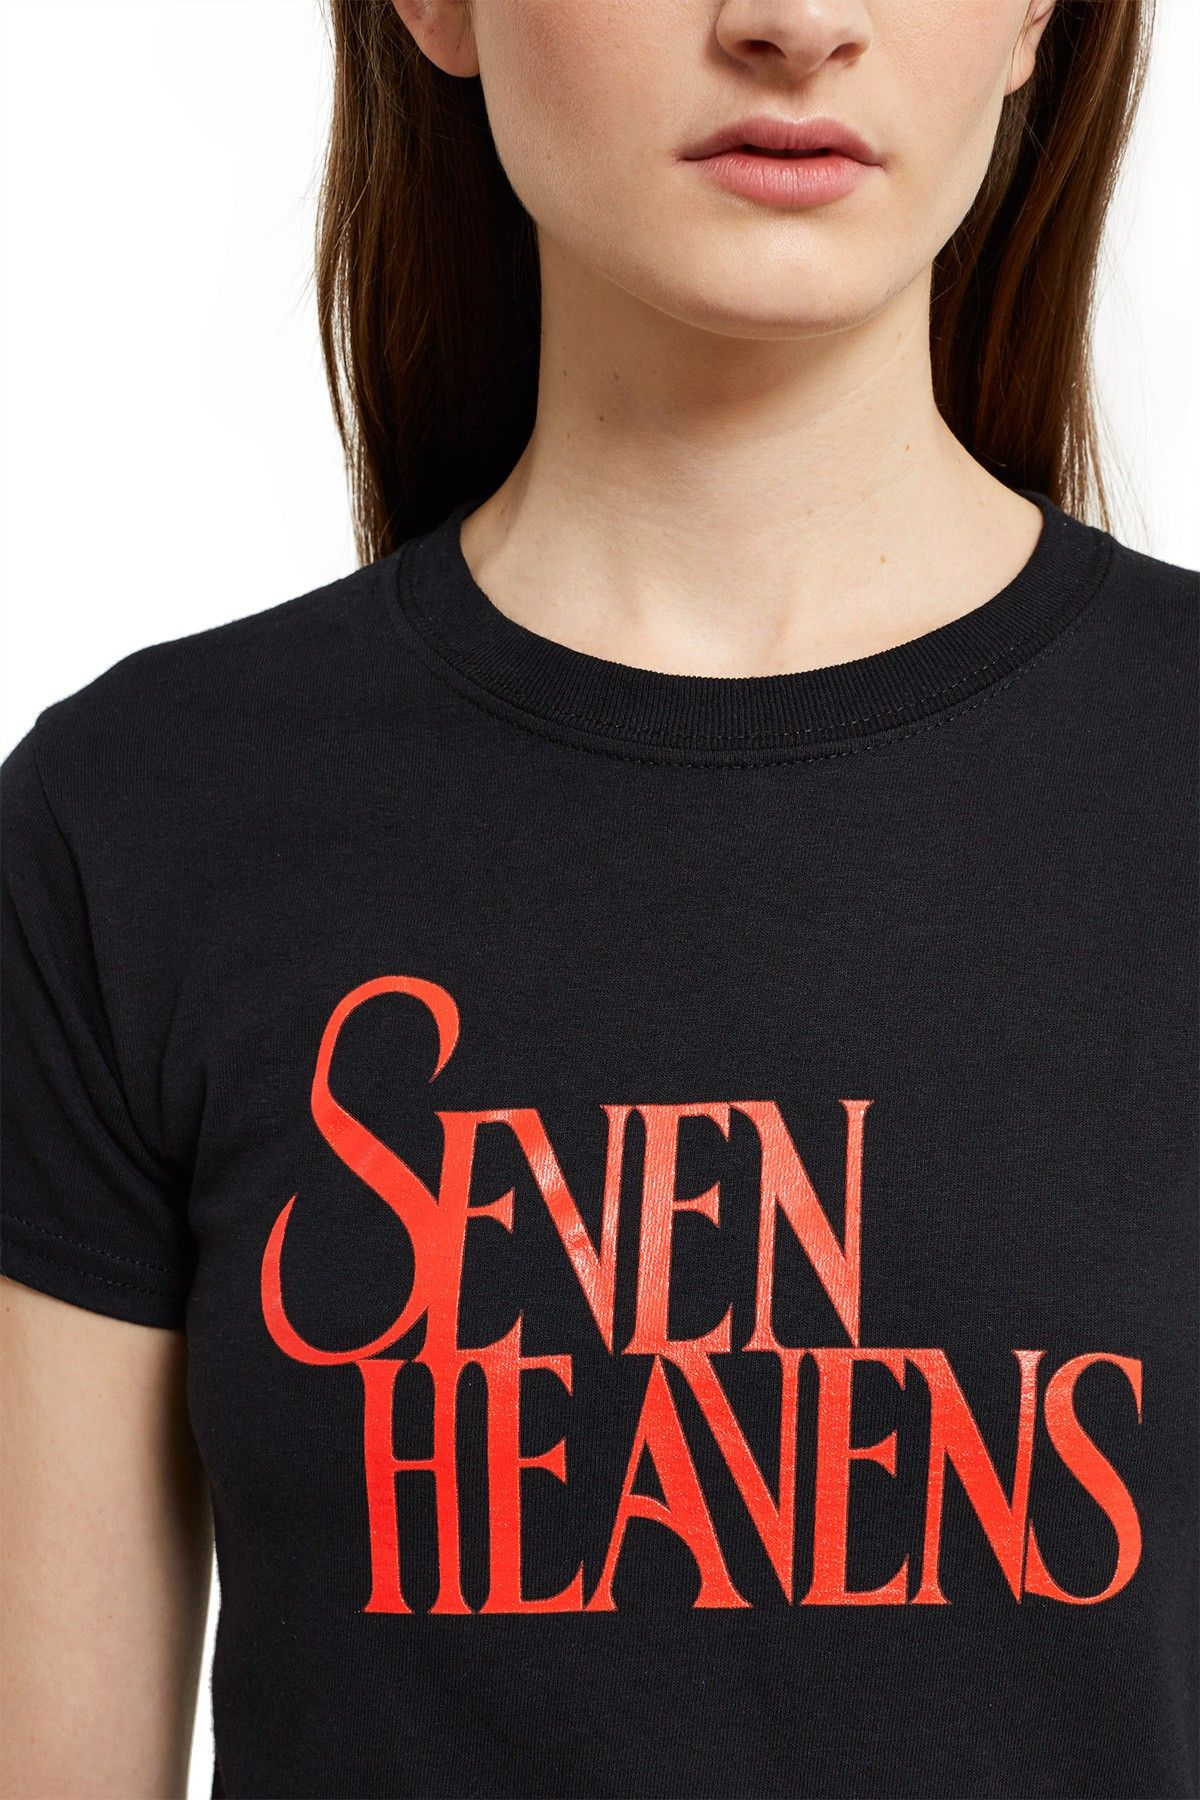 a3c713437 Daisy, Seven Heavens T-Shirt This fitted tee in classic black features the  season's phrase